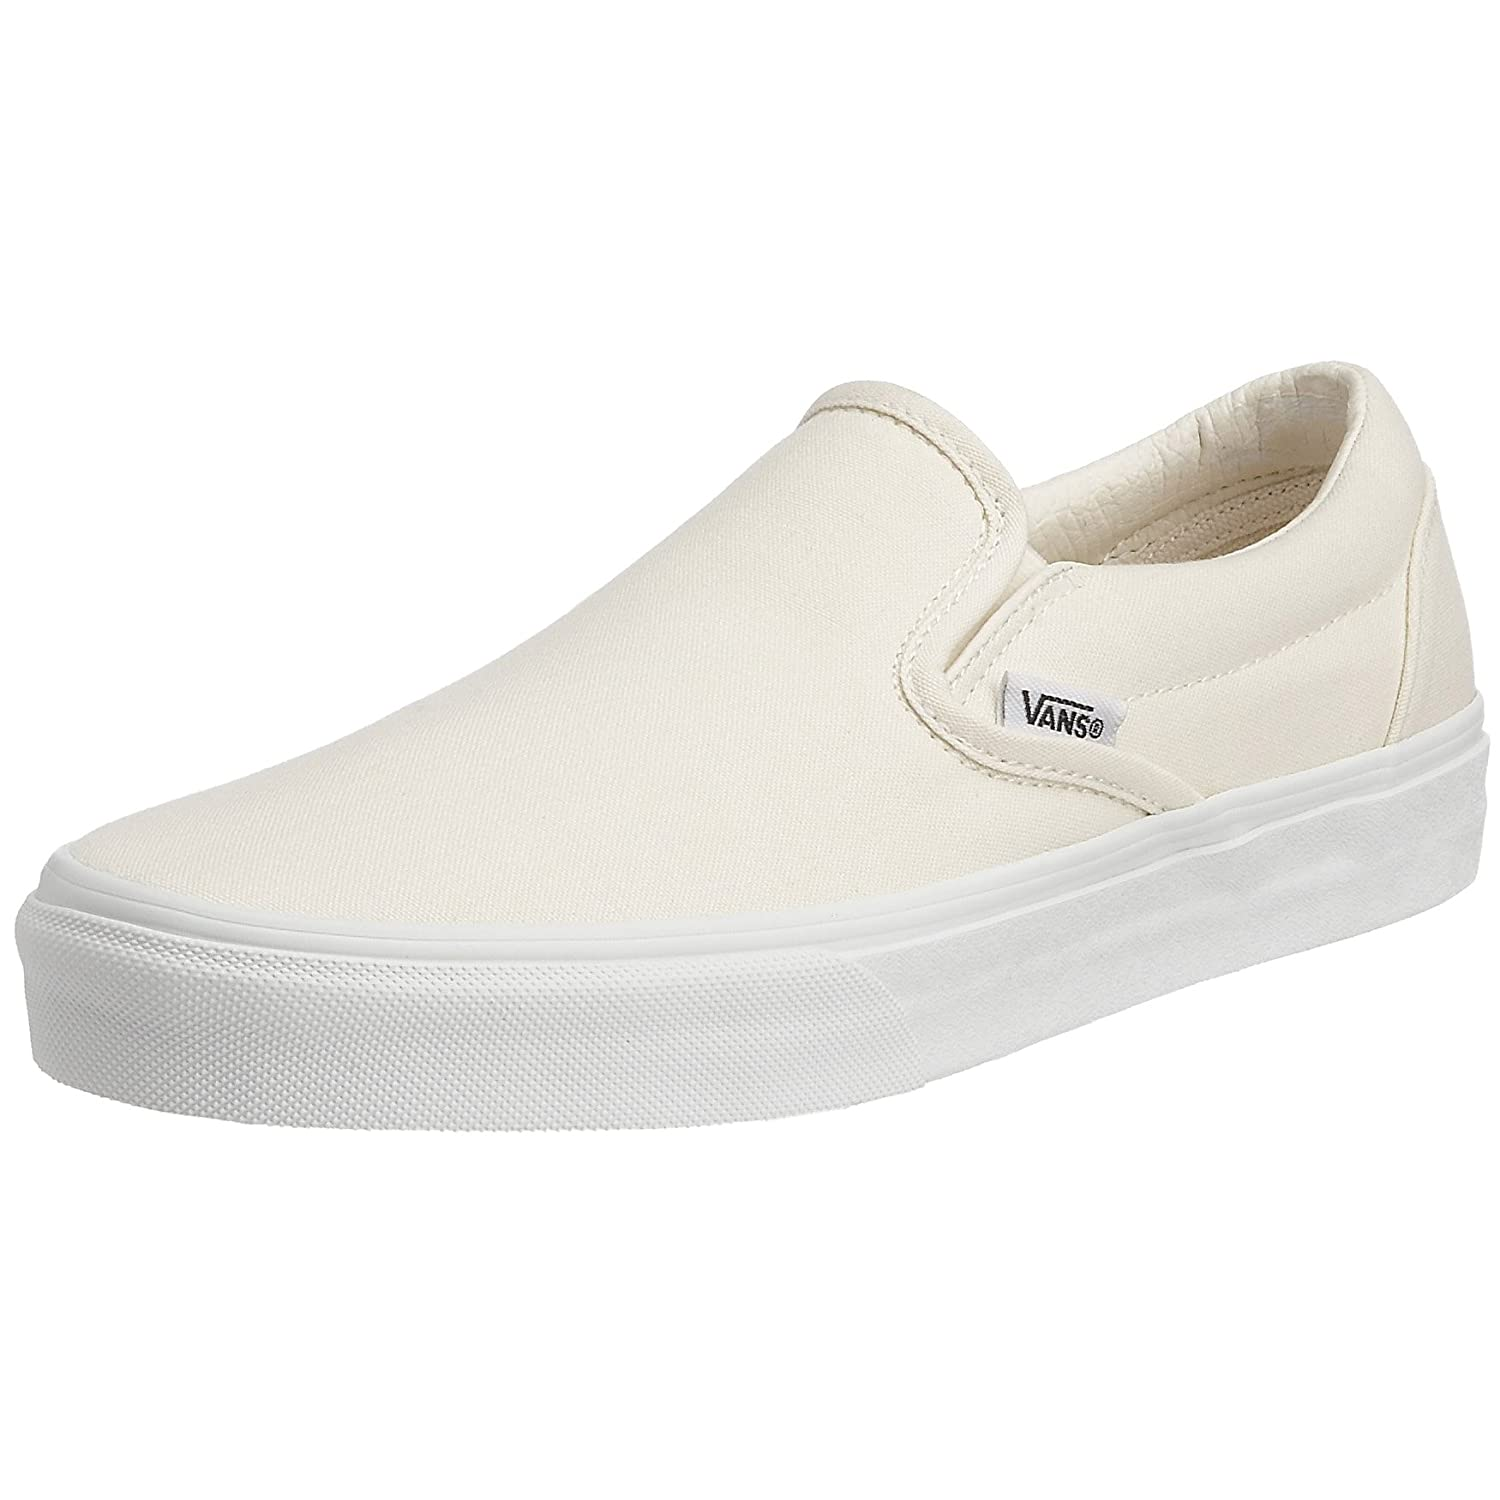 Vans Slip-on(Tm) Core Classics White (Canvas)